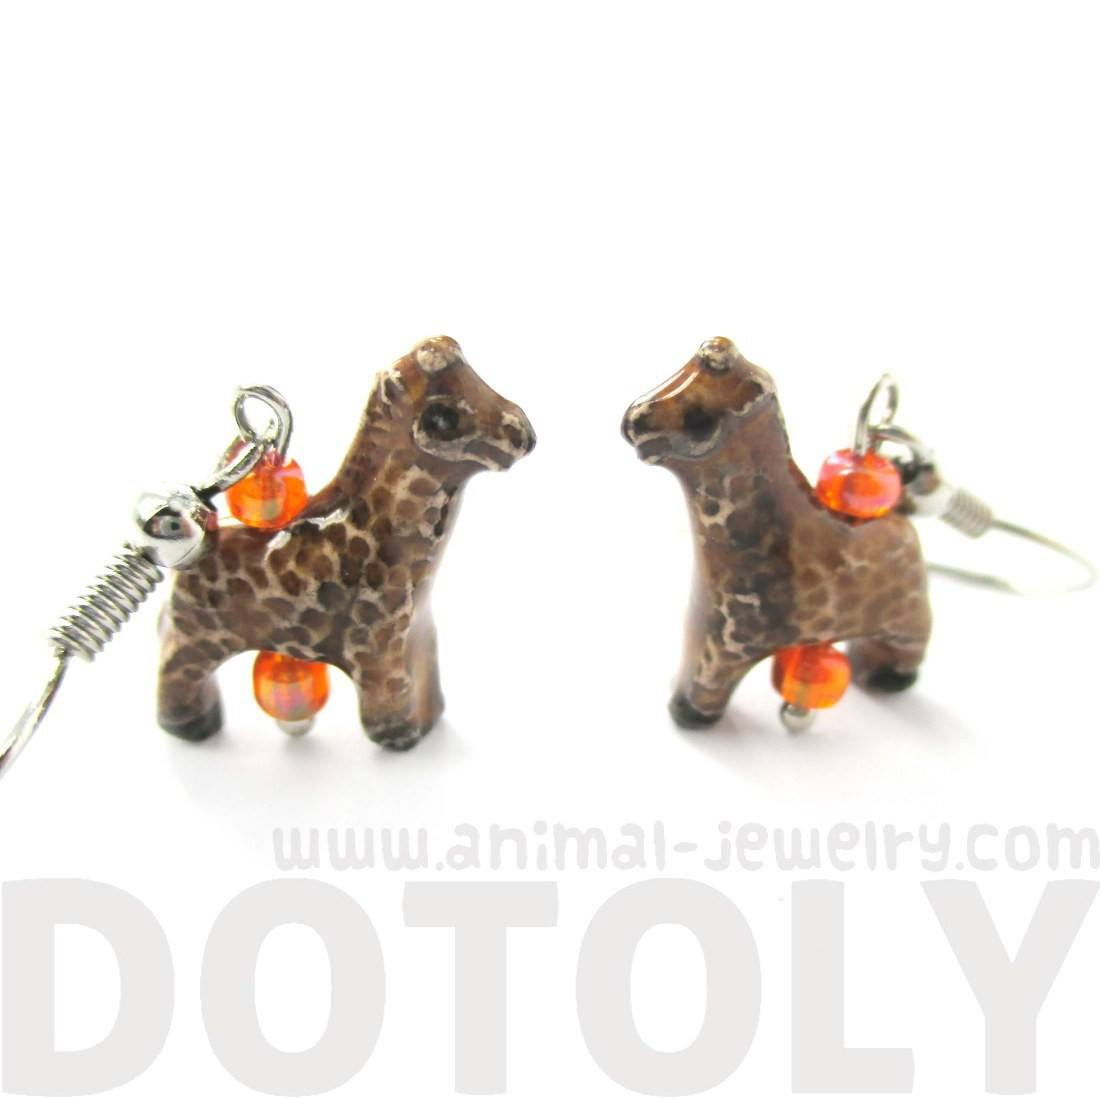 Realistic Giraffe Shaped Porcelain Ceramic Animal Dangle Earrings